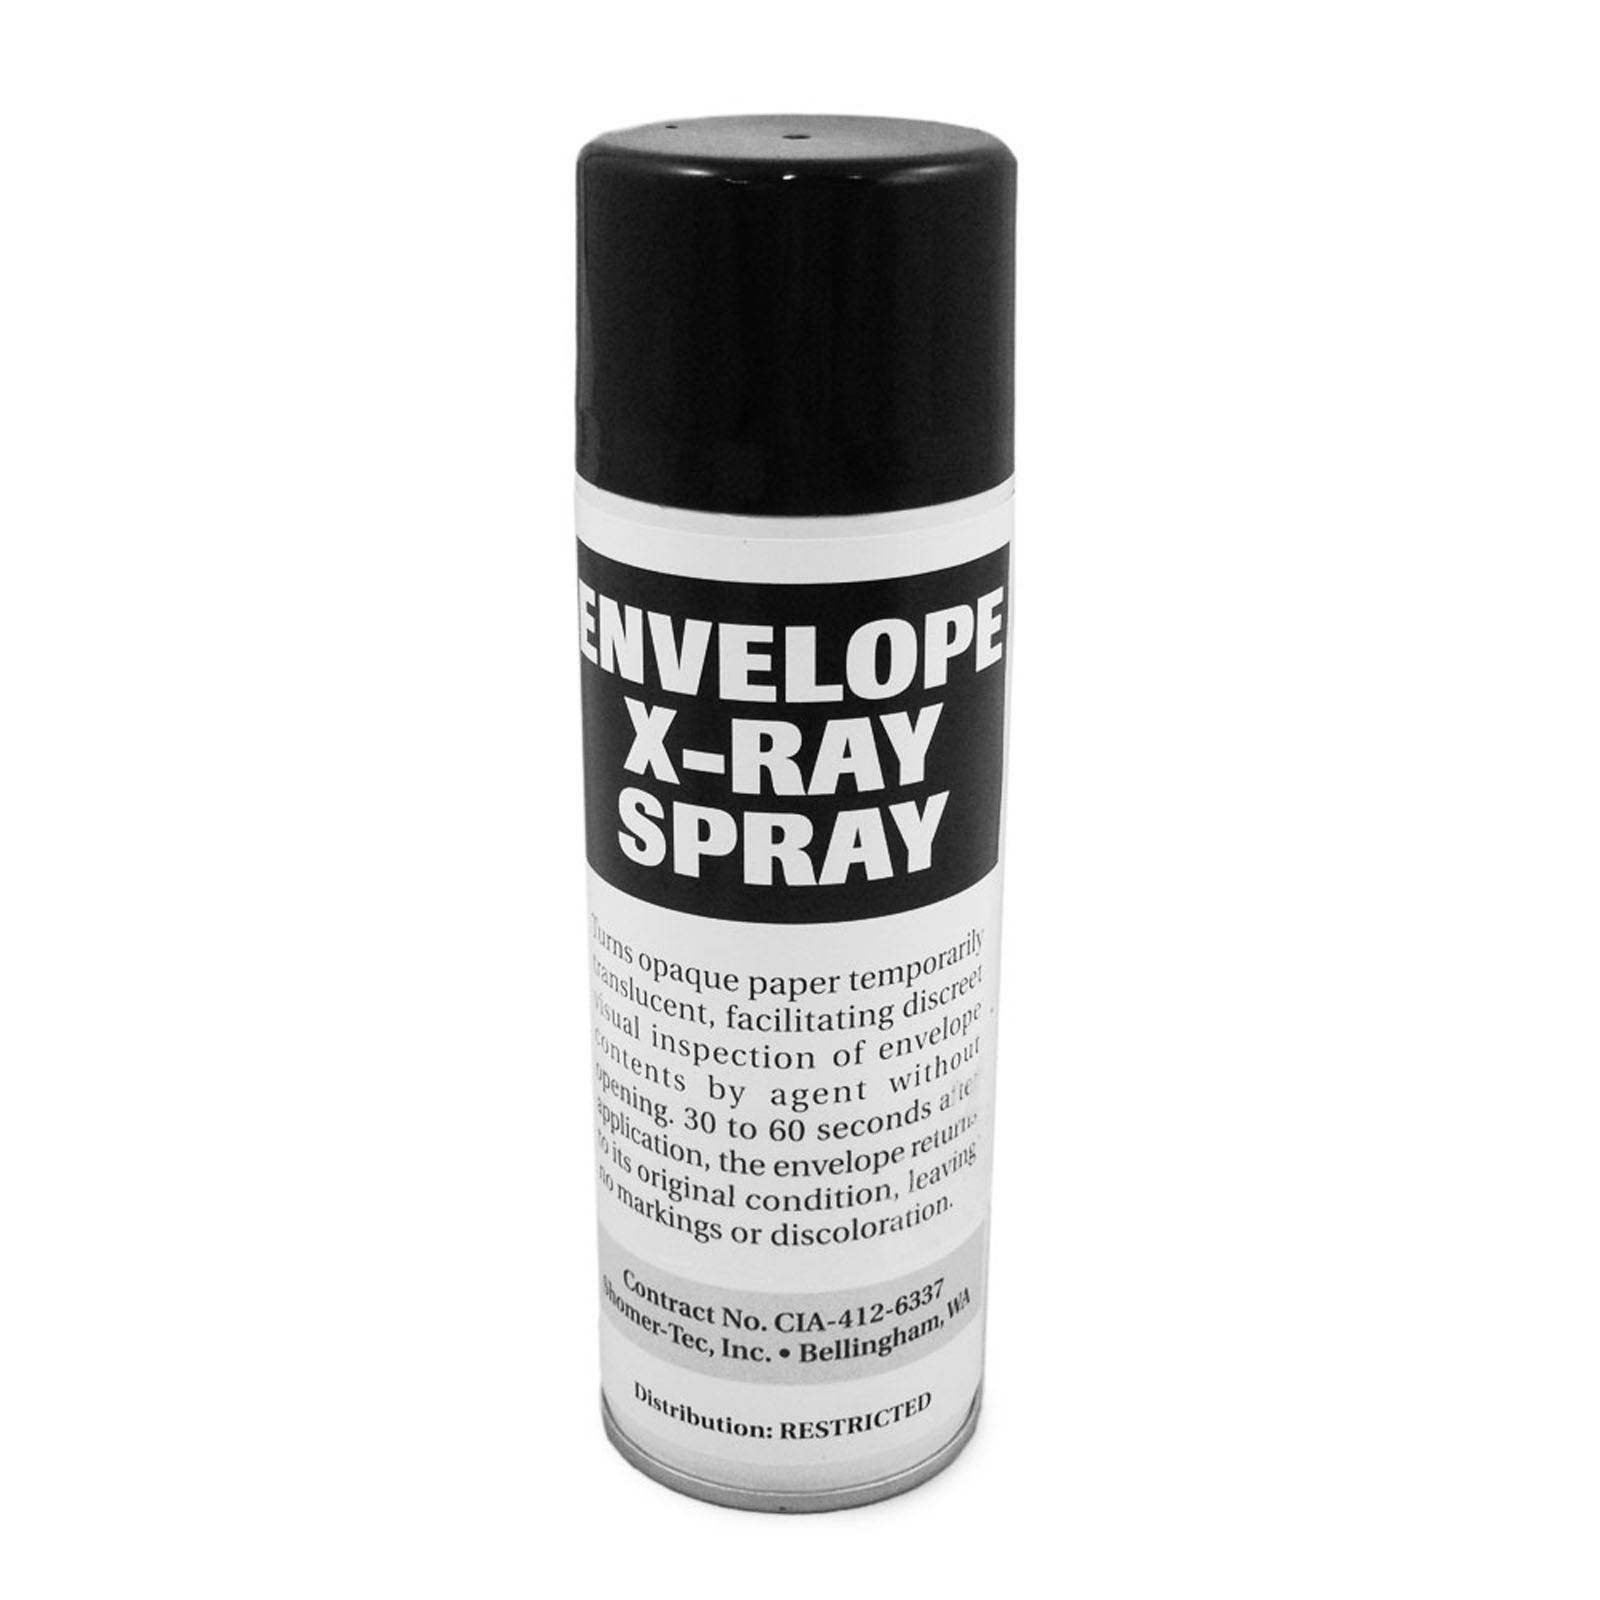 ASR Tactical Envelope X-Ray Spray Covert High Tech Spy Gadget Freon-Free